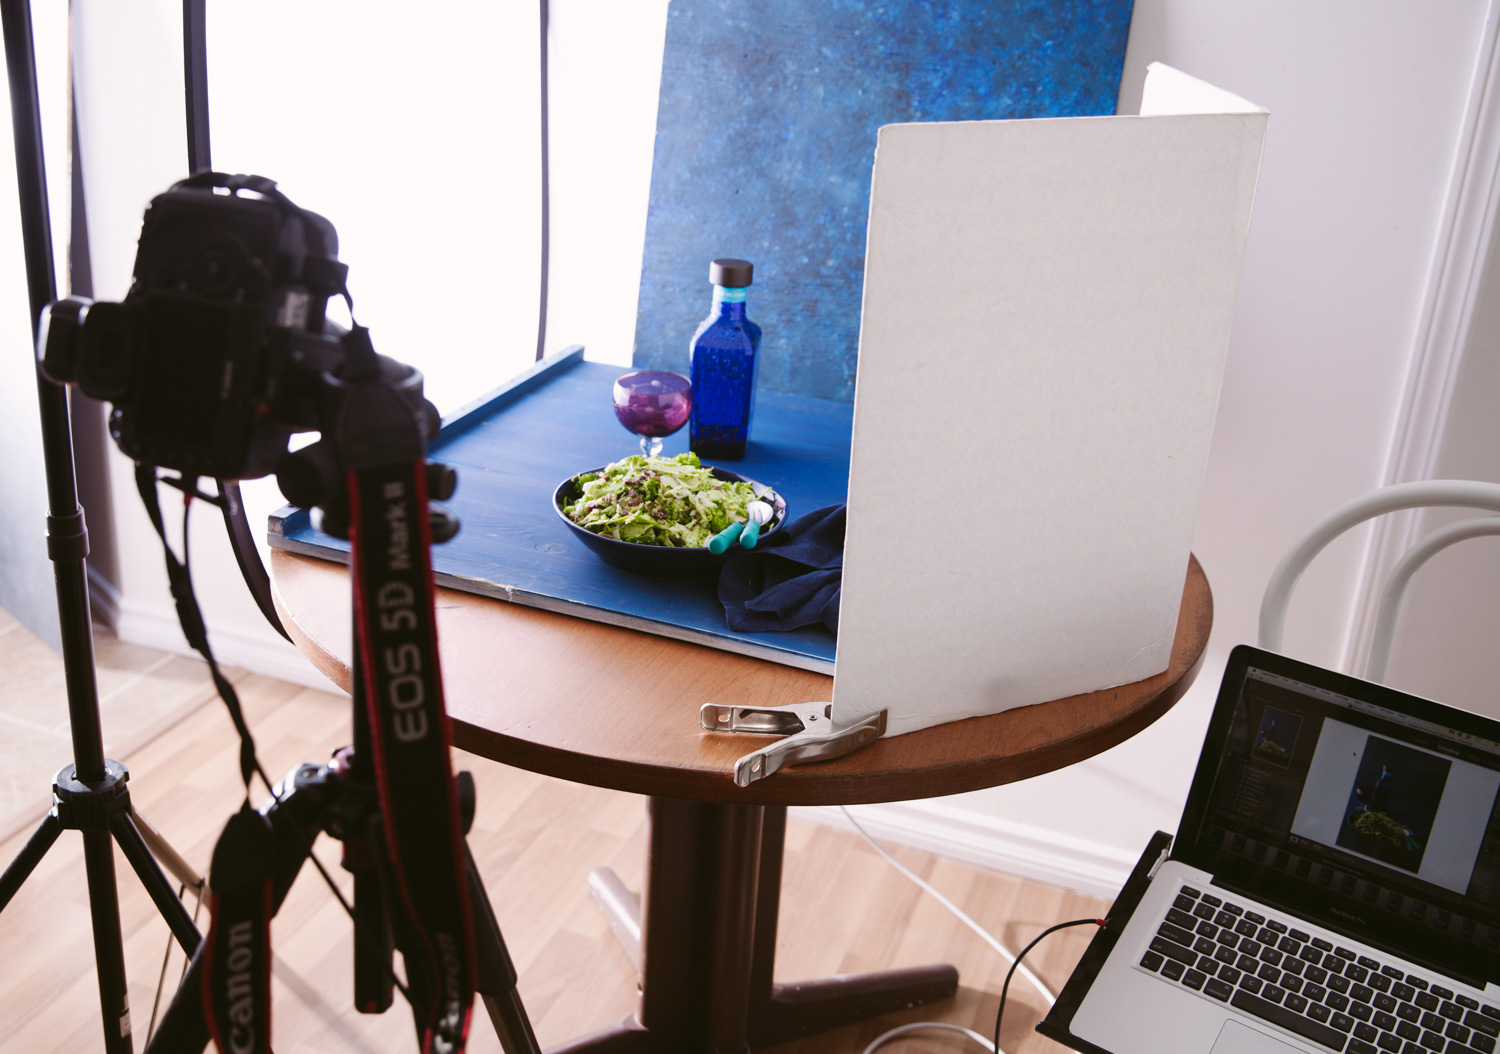 Image: You can also use plain white boards as reflectors in tight spots. Get some clamps to hold the...